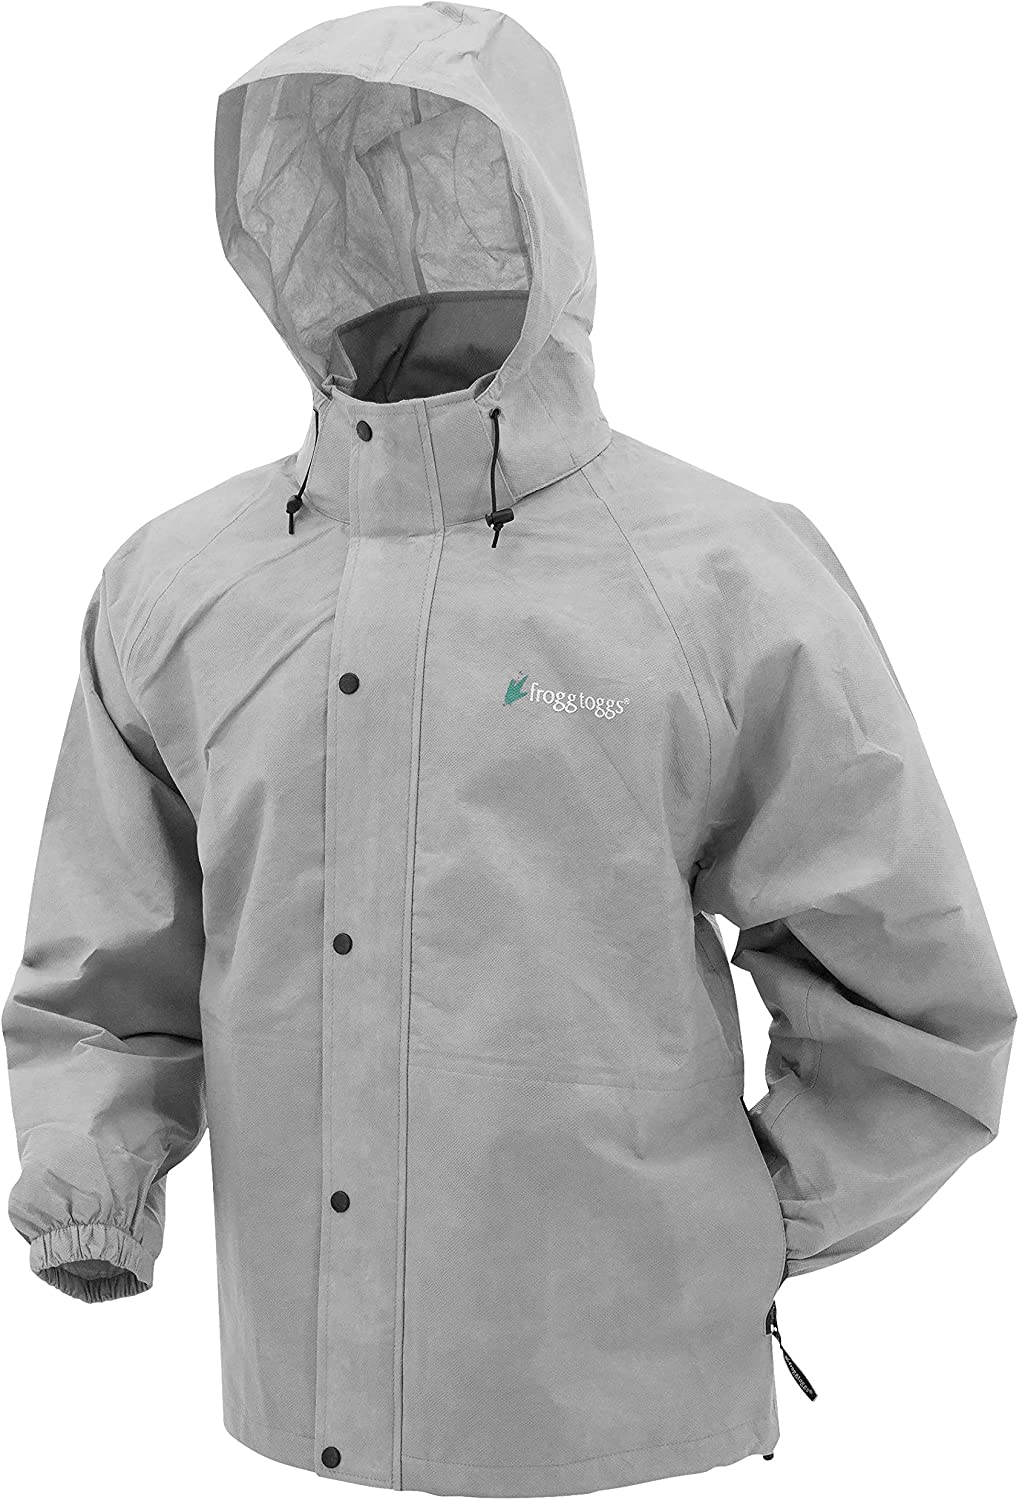 Frogg Toggs Mens Pro Action Gray Rain Jacket PA63123-07-2XL